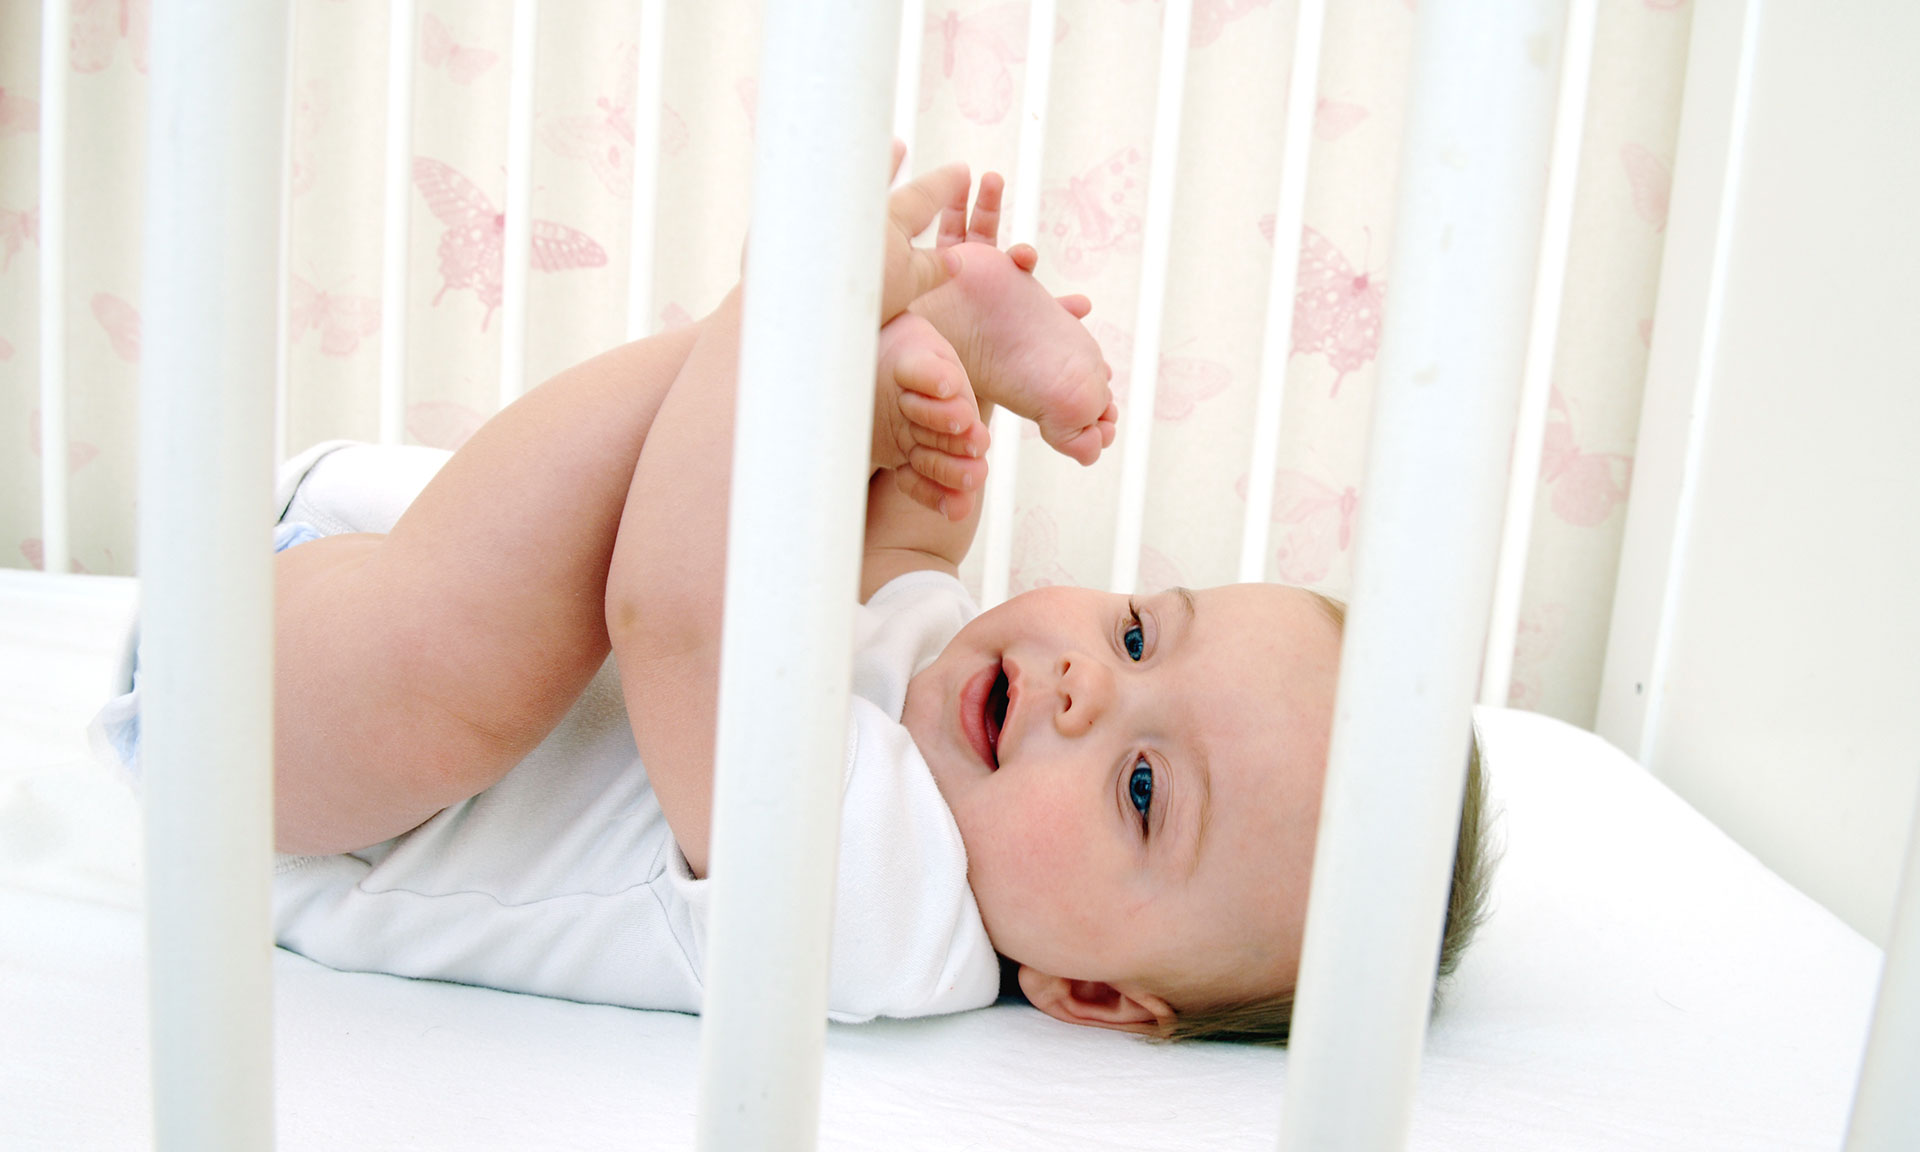 latest cot mattress reviews reveal best buys and don't buys – which